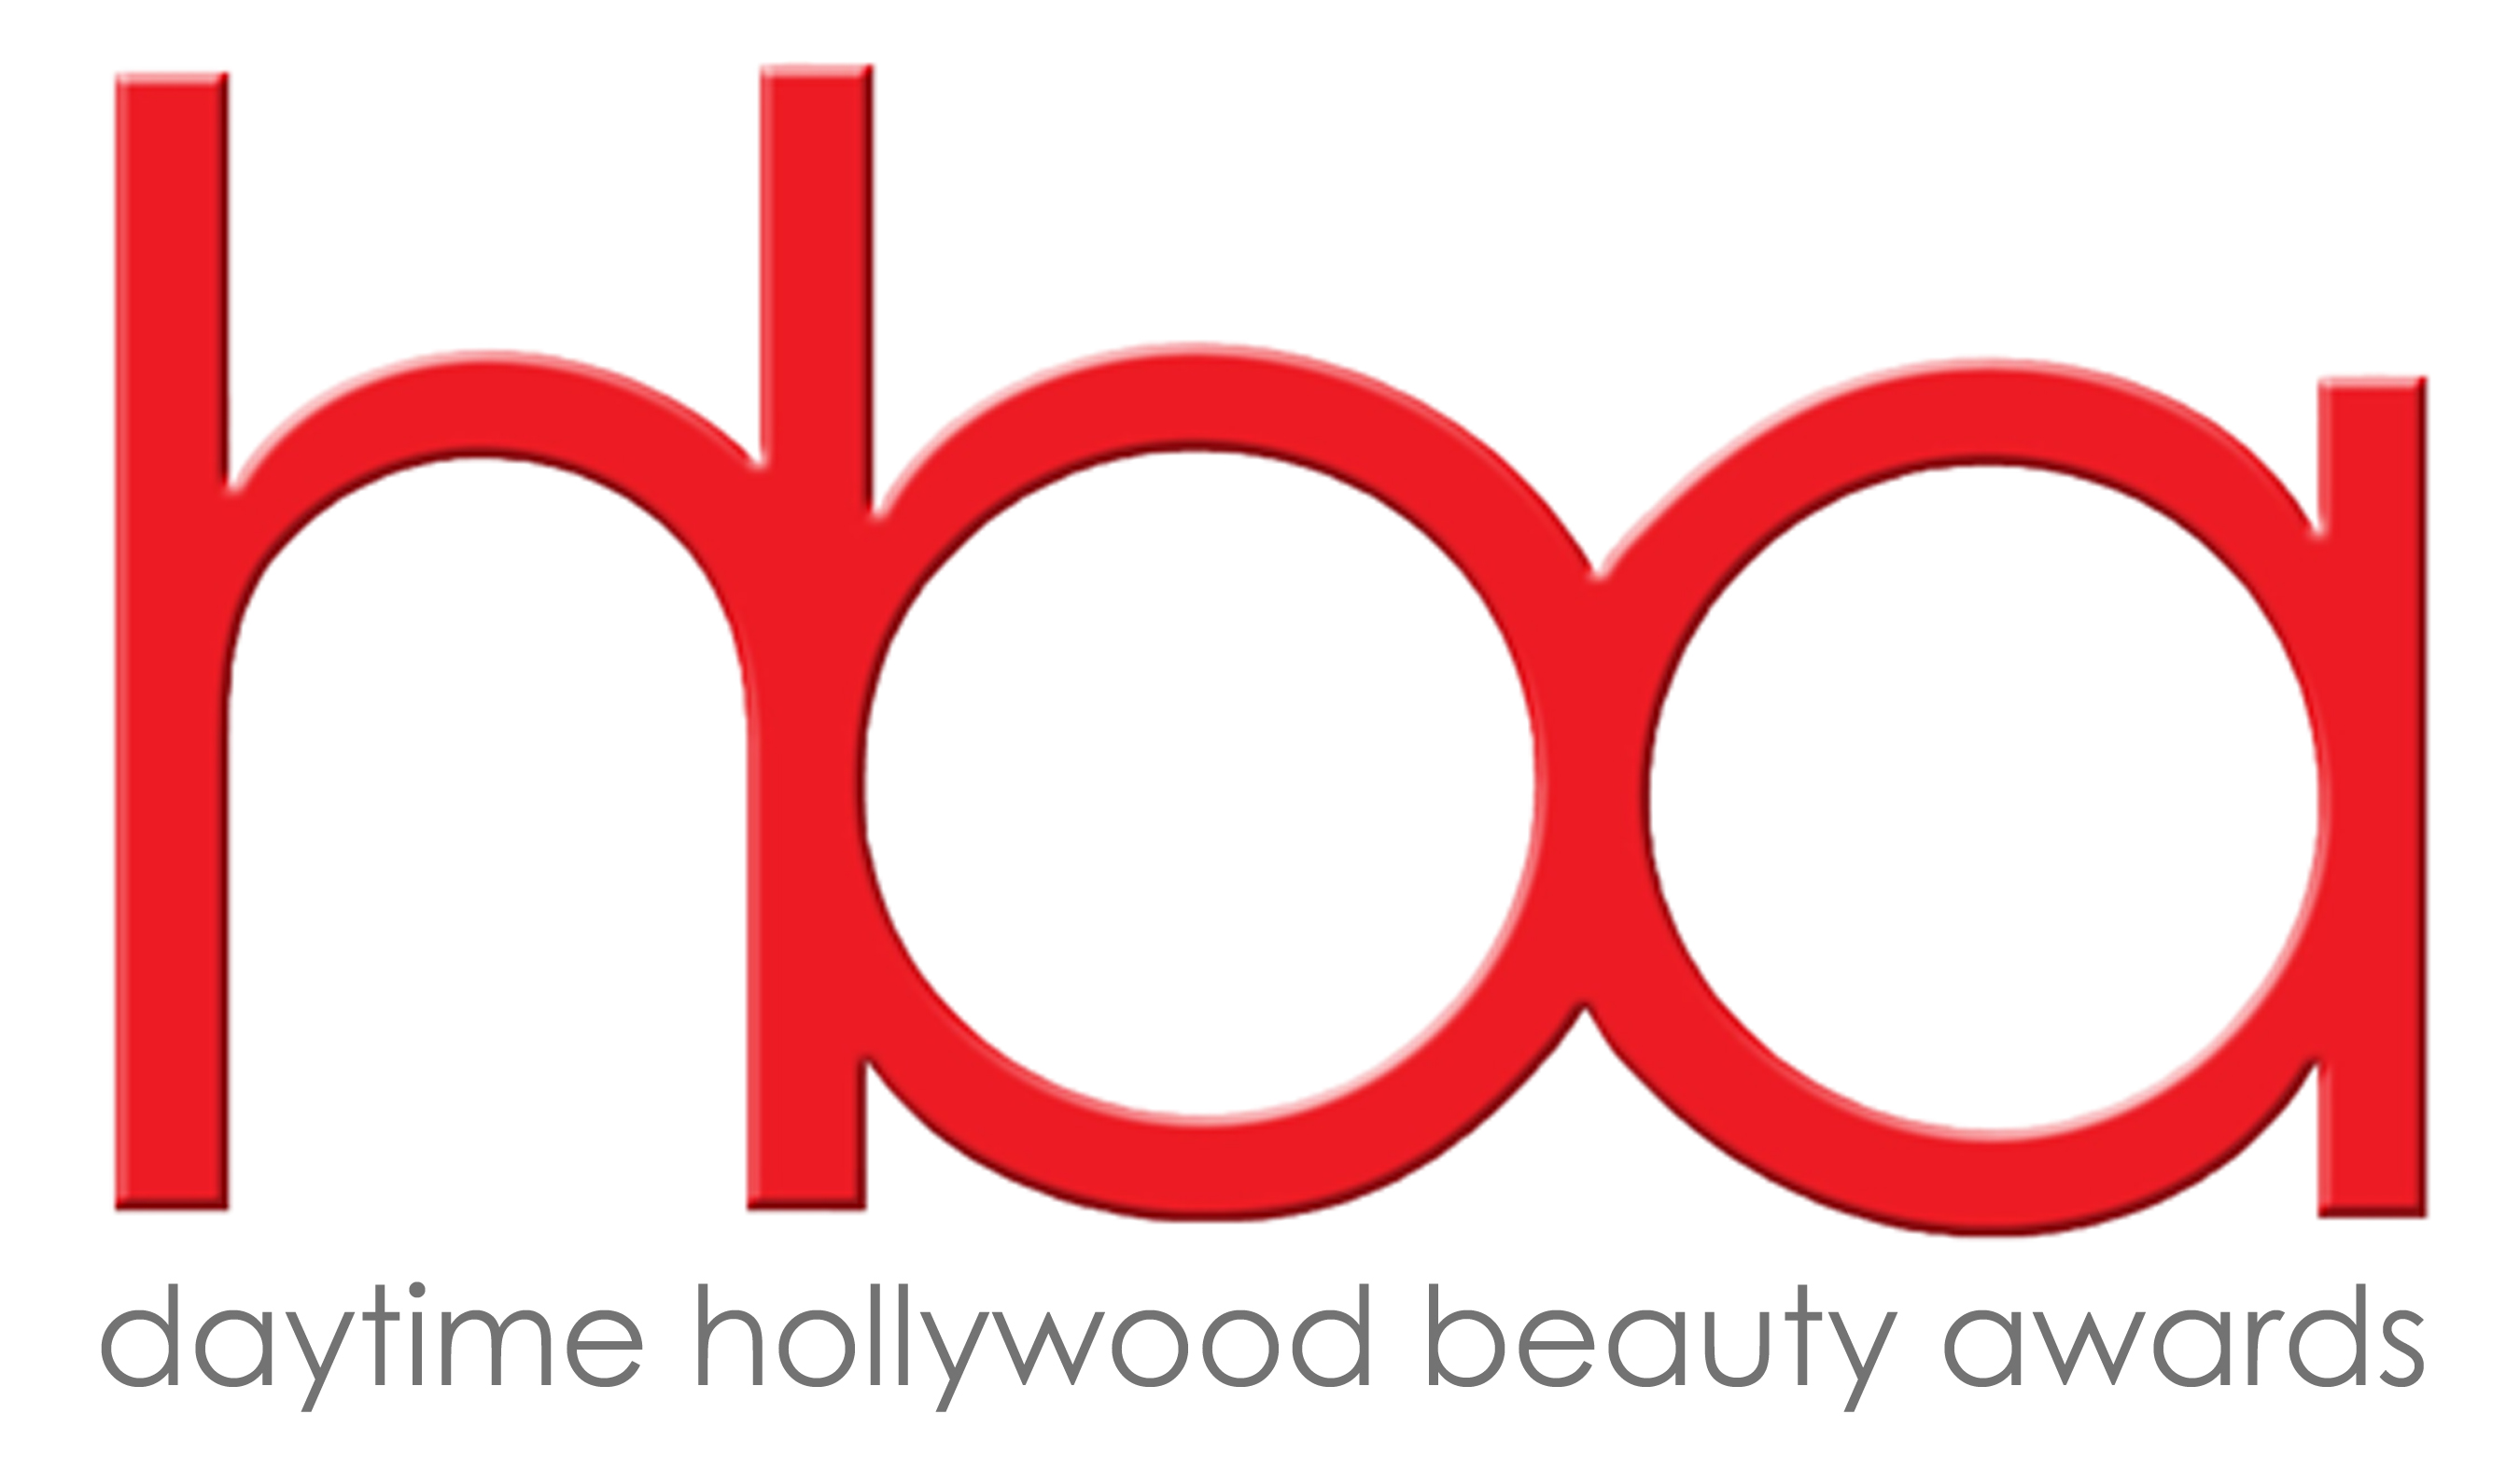 daytime hollywood beauty awards, logo